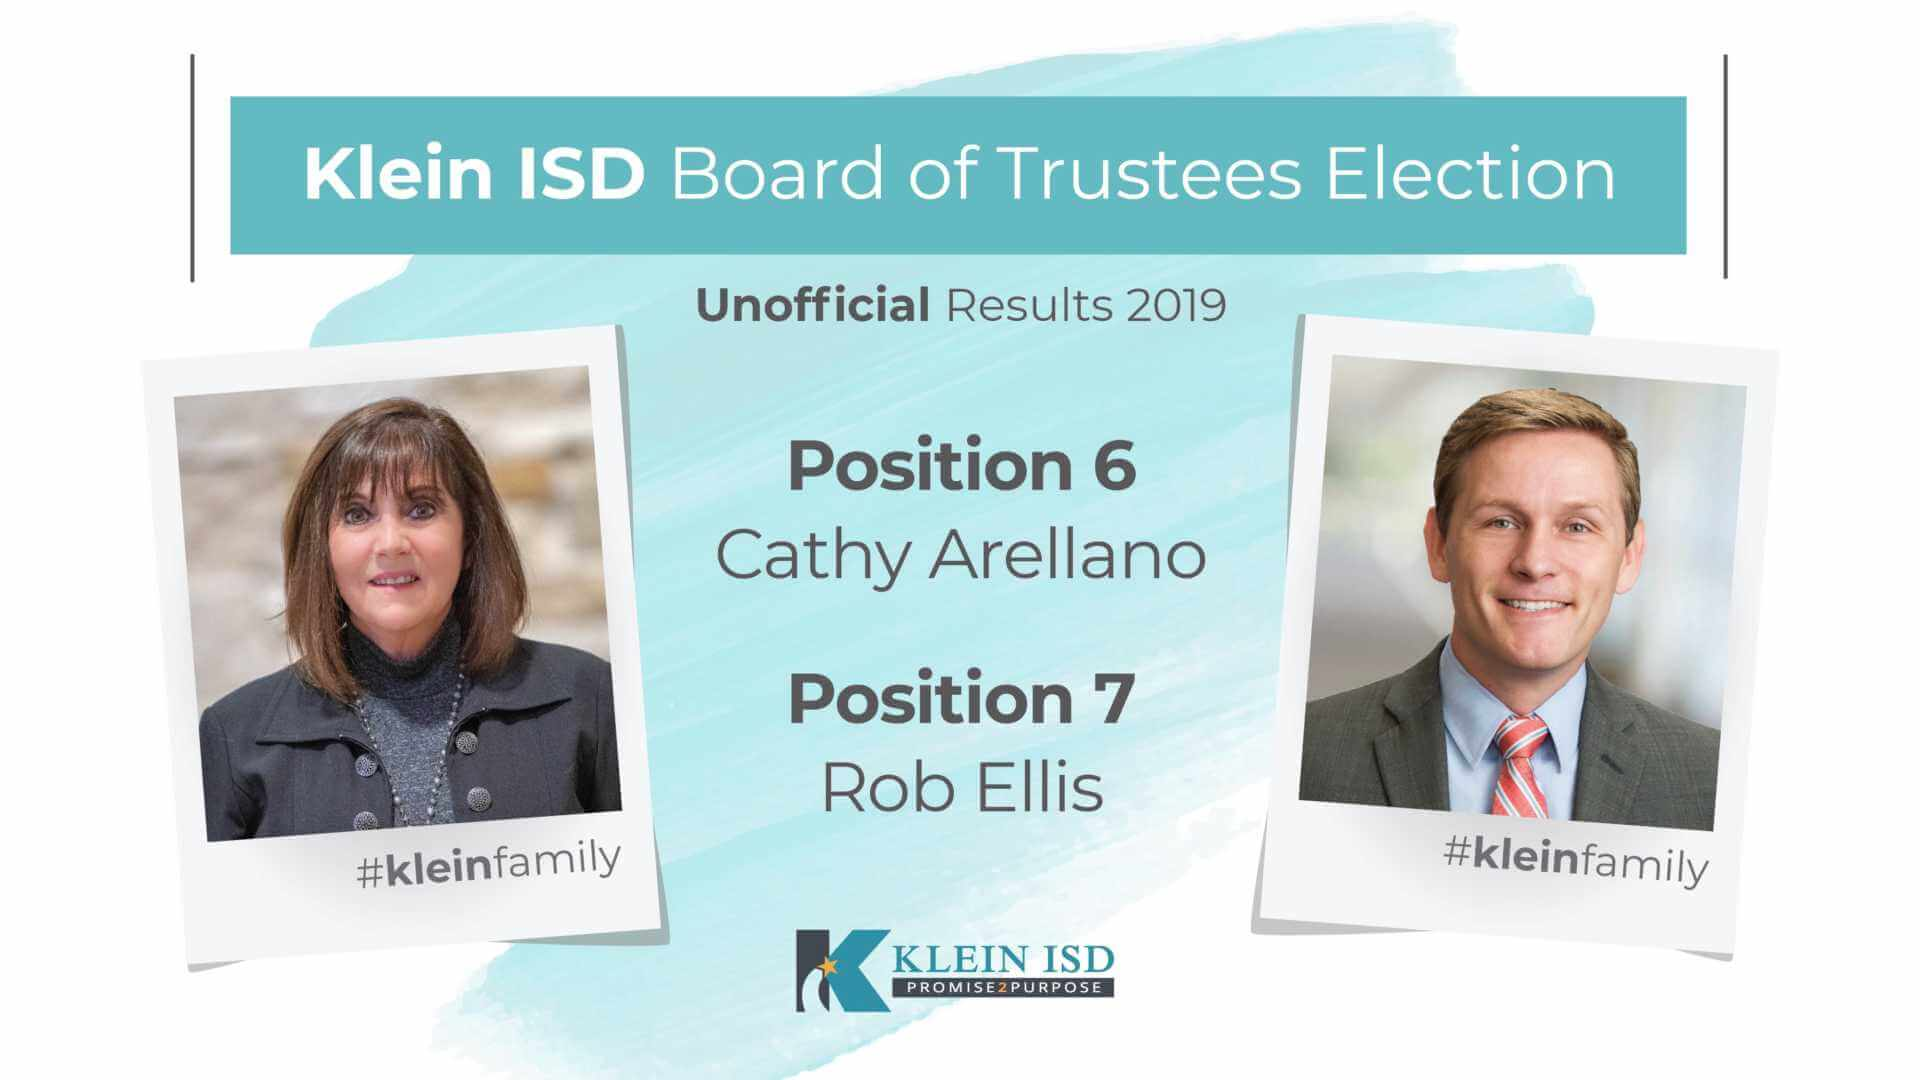 Unofficial Results from Klein ISD Board of Trustees Election Released